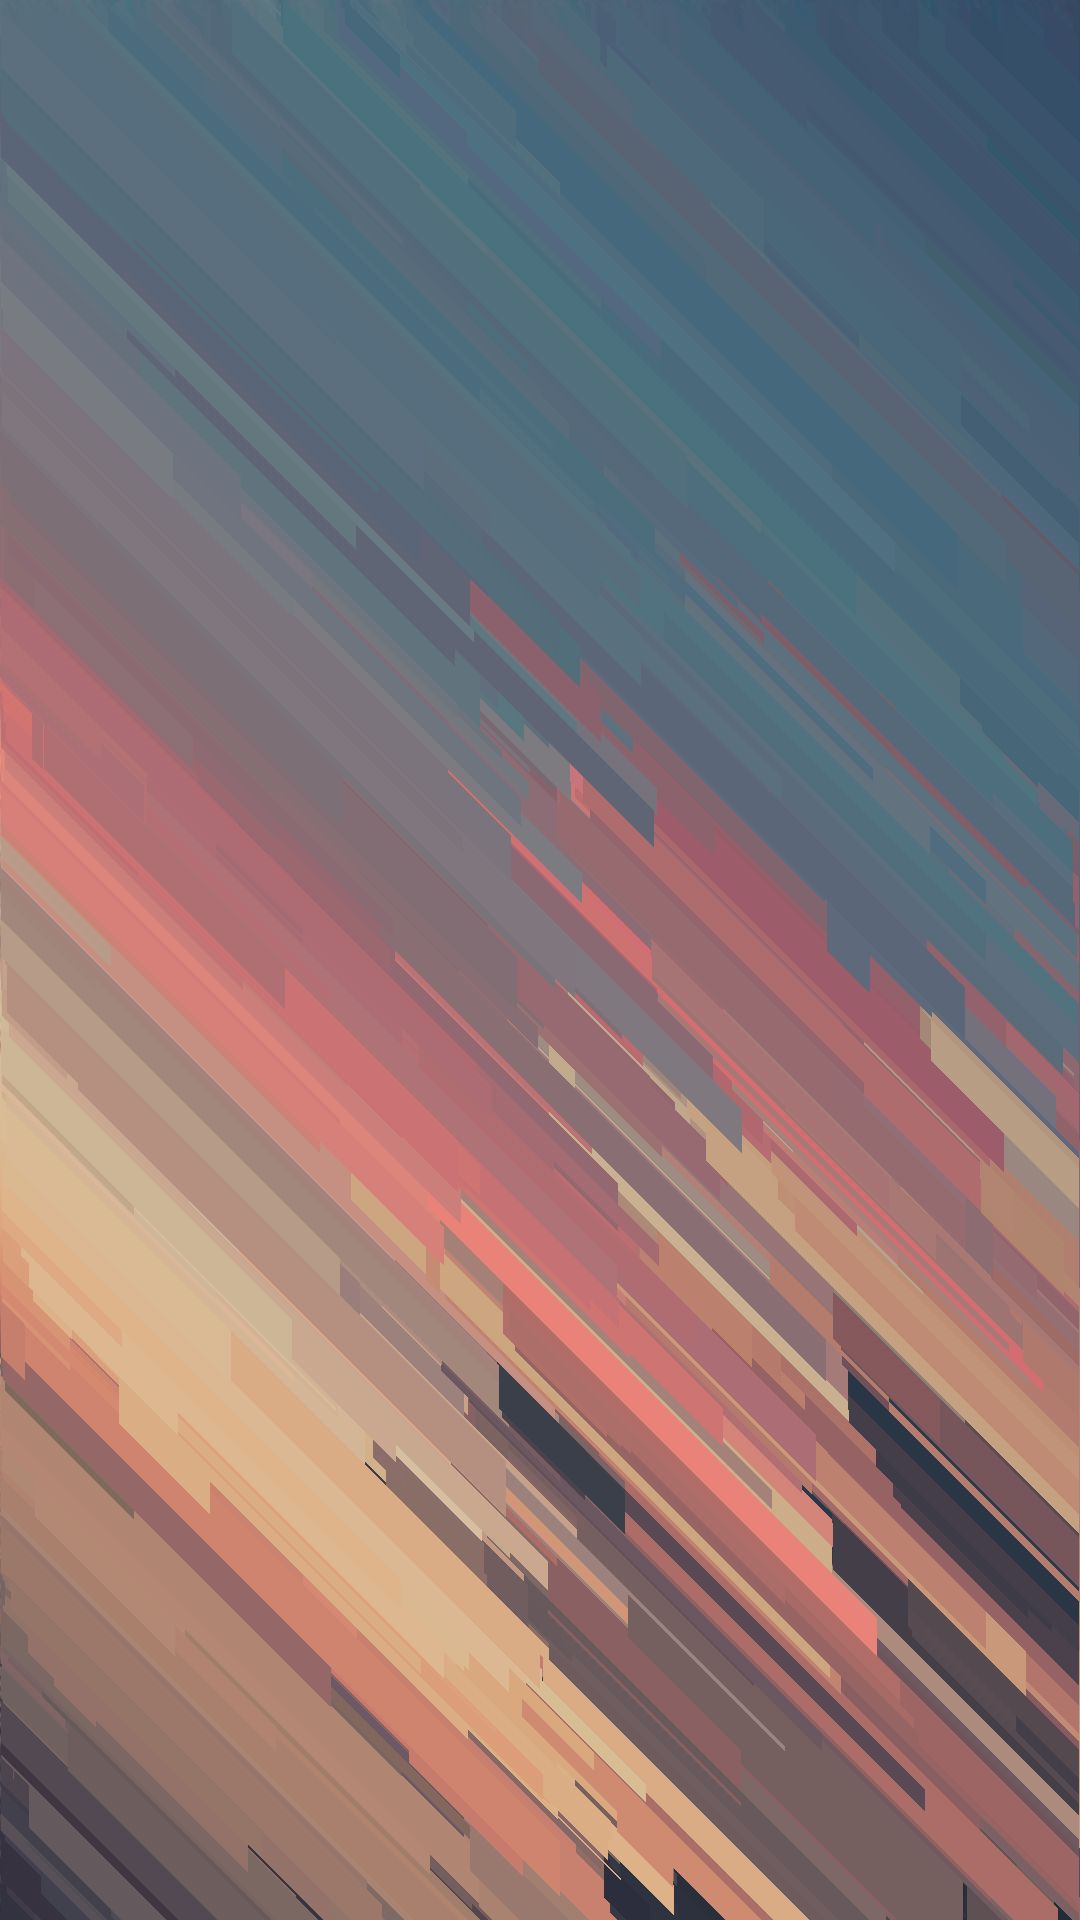 List of Cool Abstract Phone Wallpaper HD Today by imgur.com